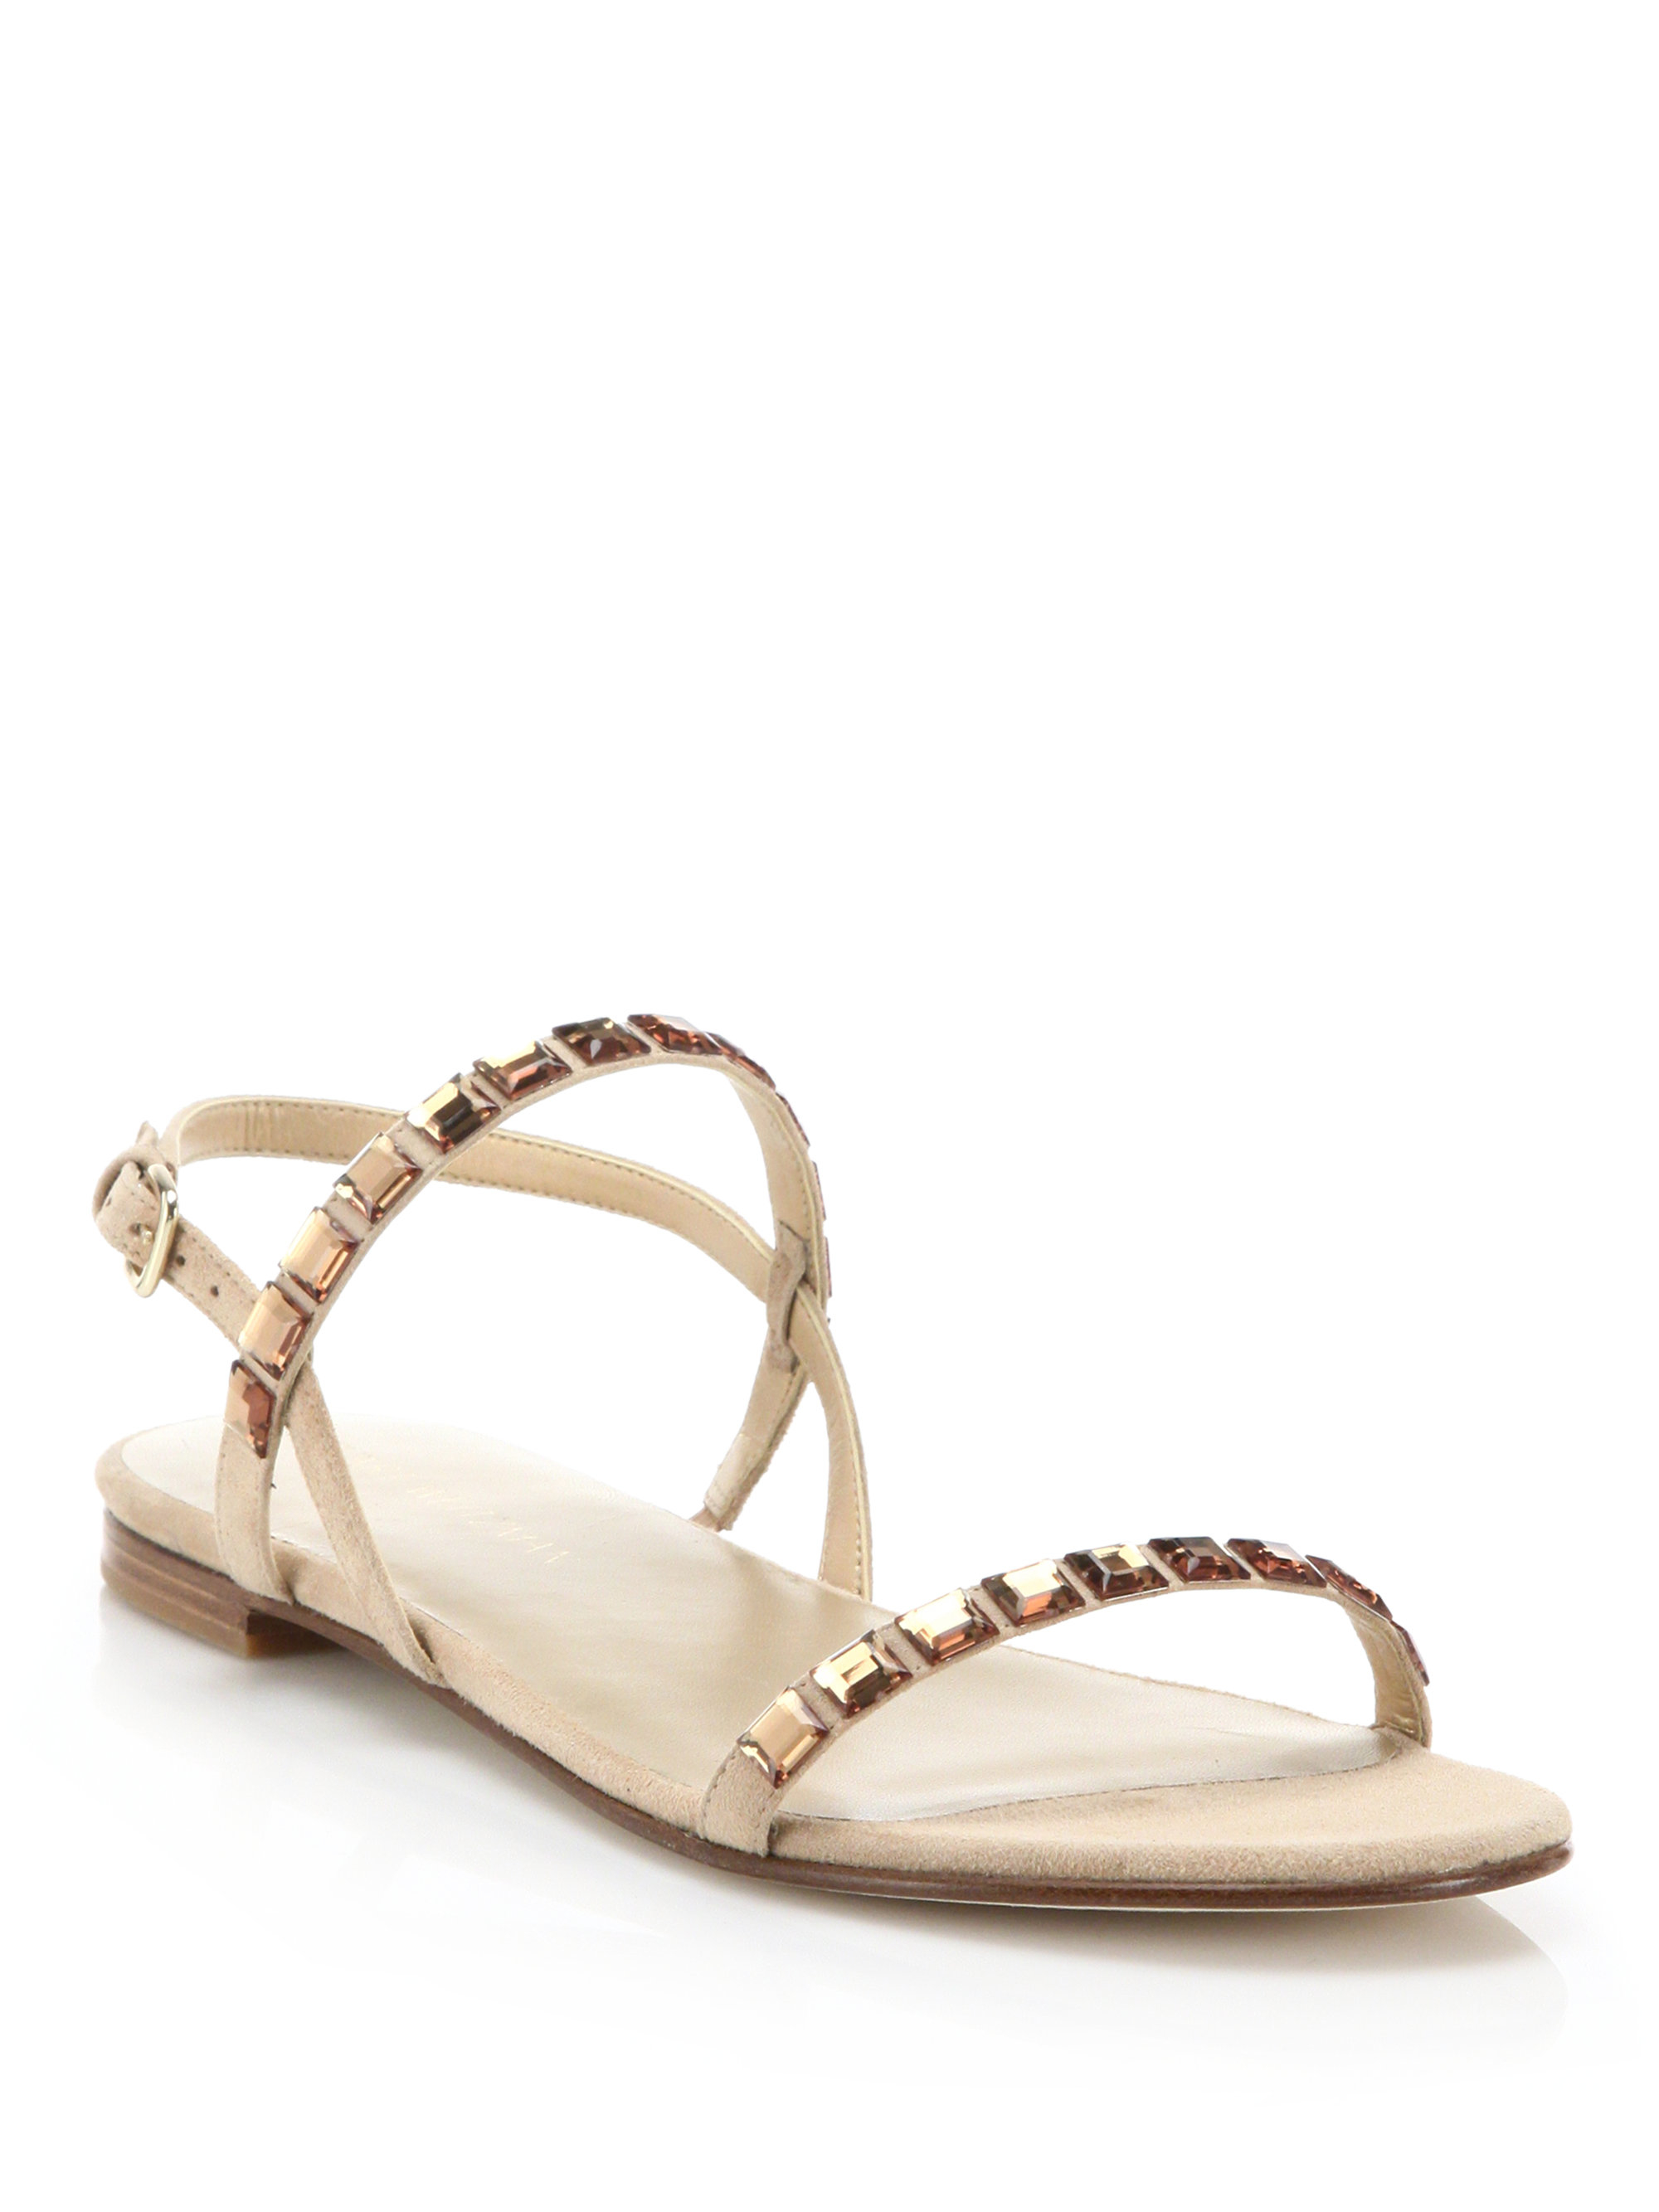 f41e2135165d62 Lyst - Stuart Weitzman Trailmix Jeweled Suede Flat Sandals in Natural